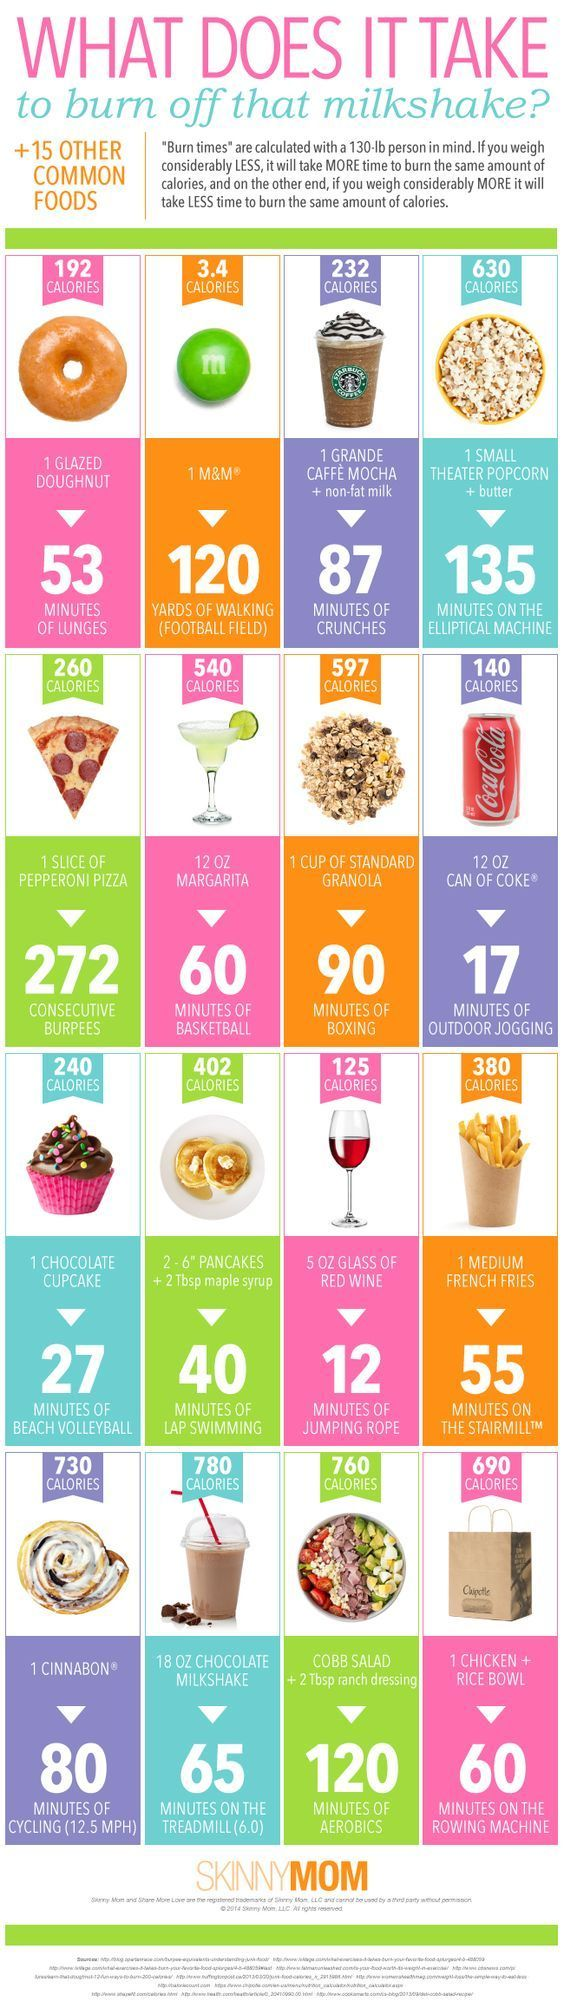 See what it takes to burn off your favorite treats?